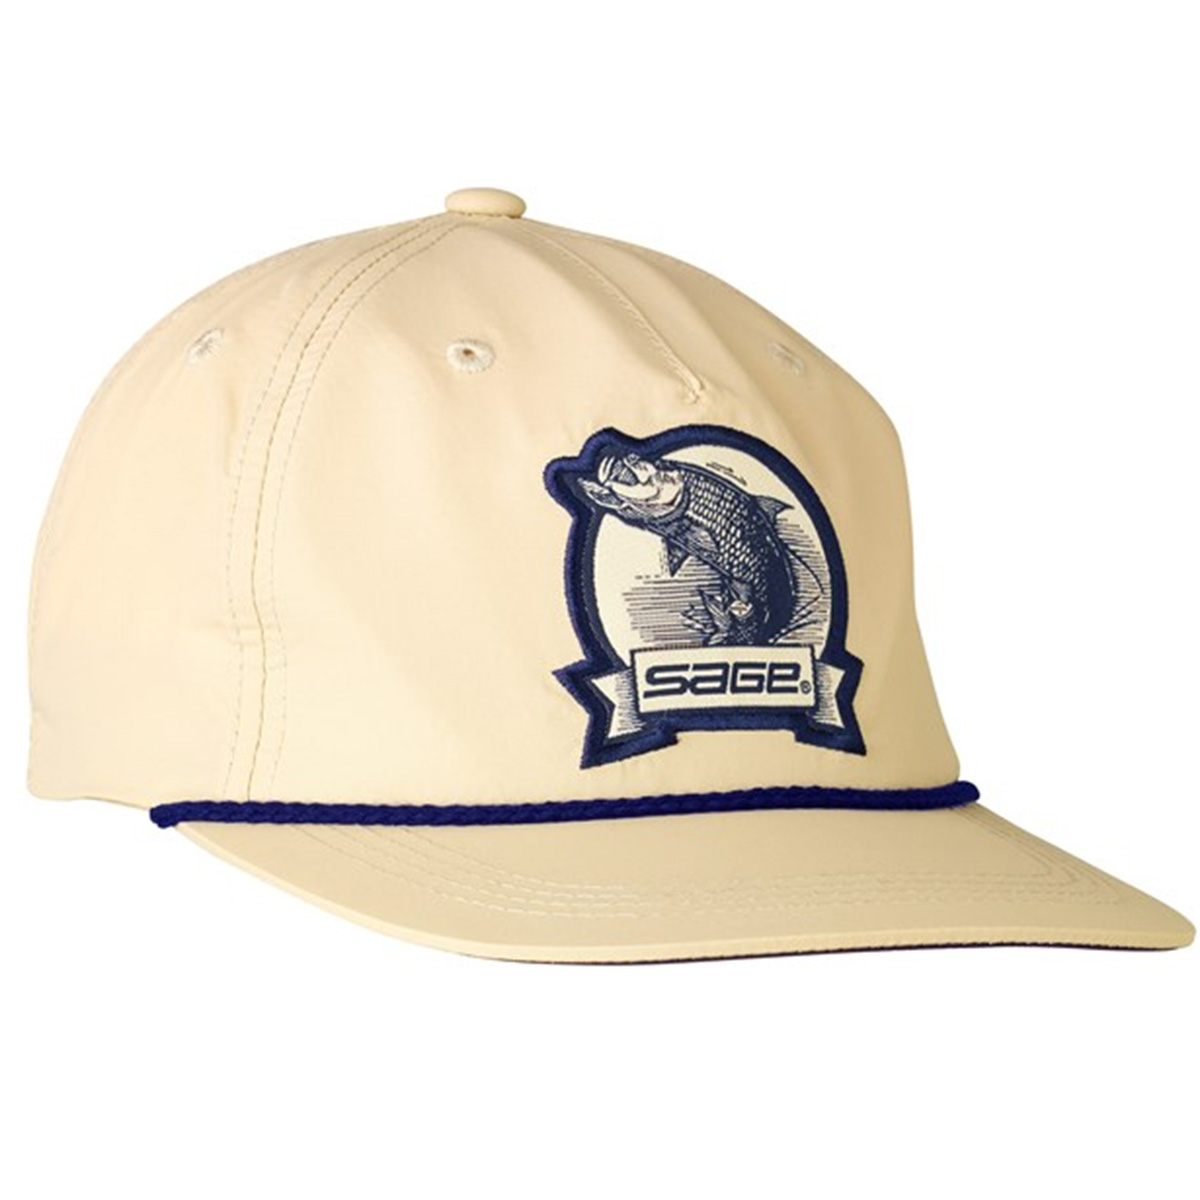 Heritage Captains Hat Tan